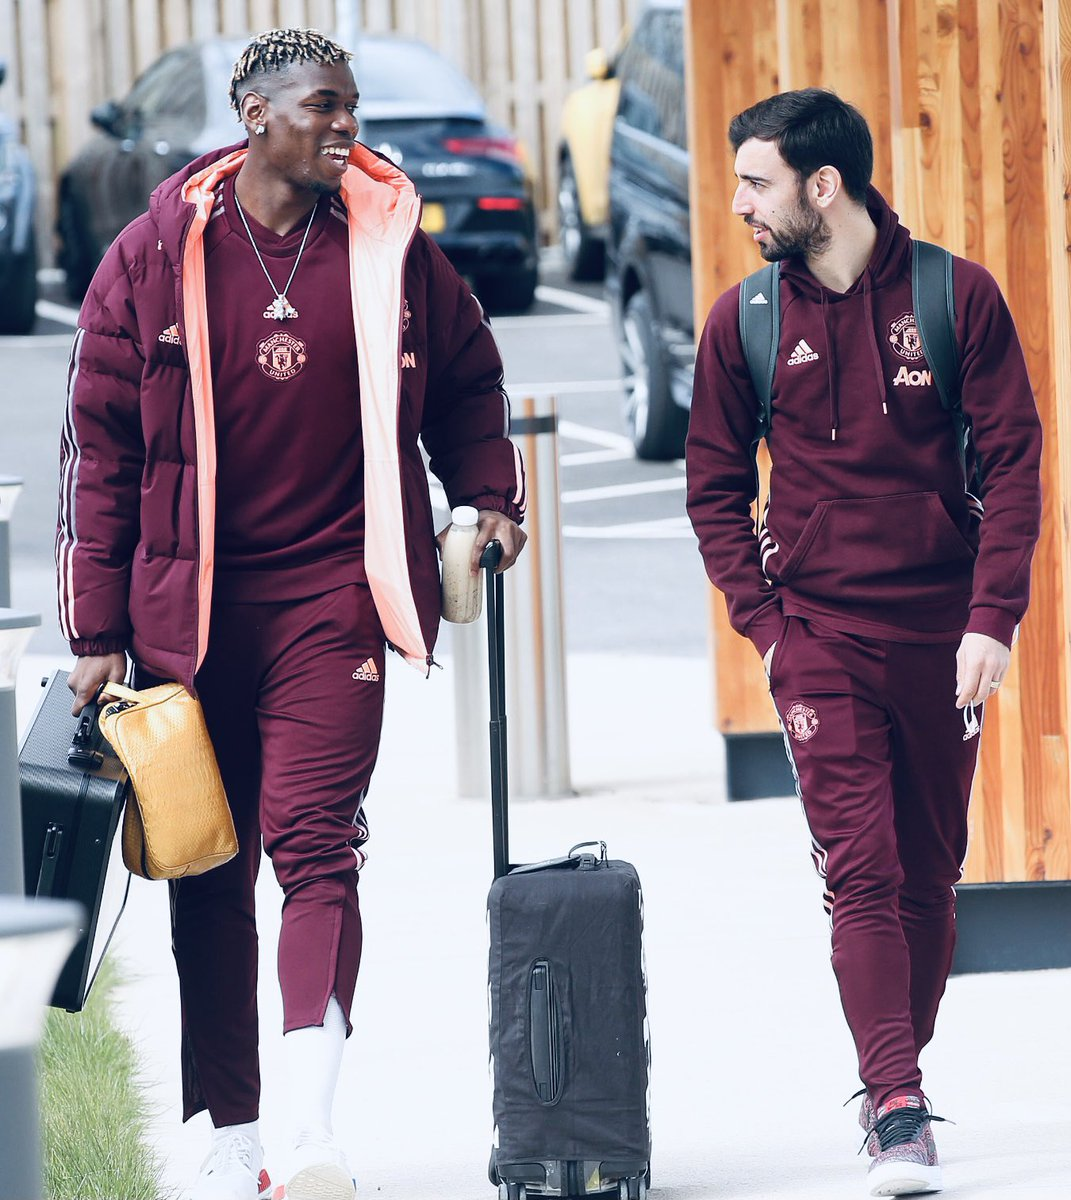 """Fresh and ready! 😉  @paulpogba with all that luggage I hope you didn't forget the """"Perudo"""" game 🎲  Spain here we come 🛫🇪🇸 https://t.co/z8u8GHzGlq"""